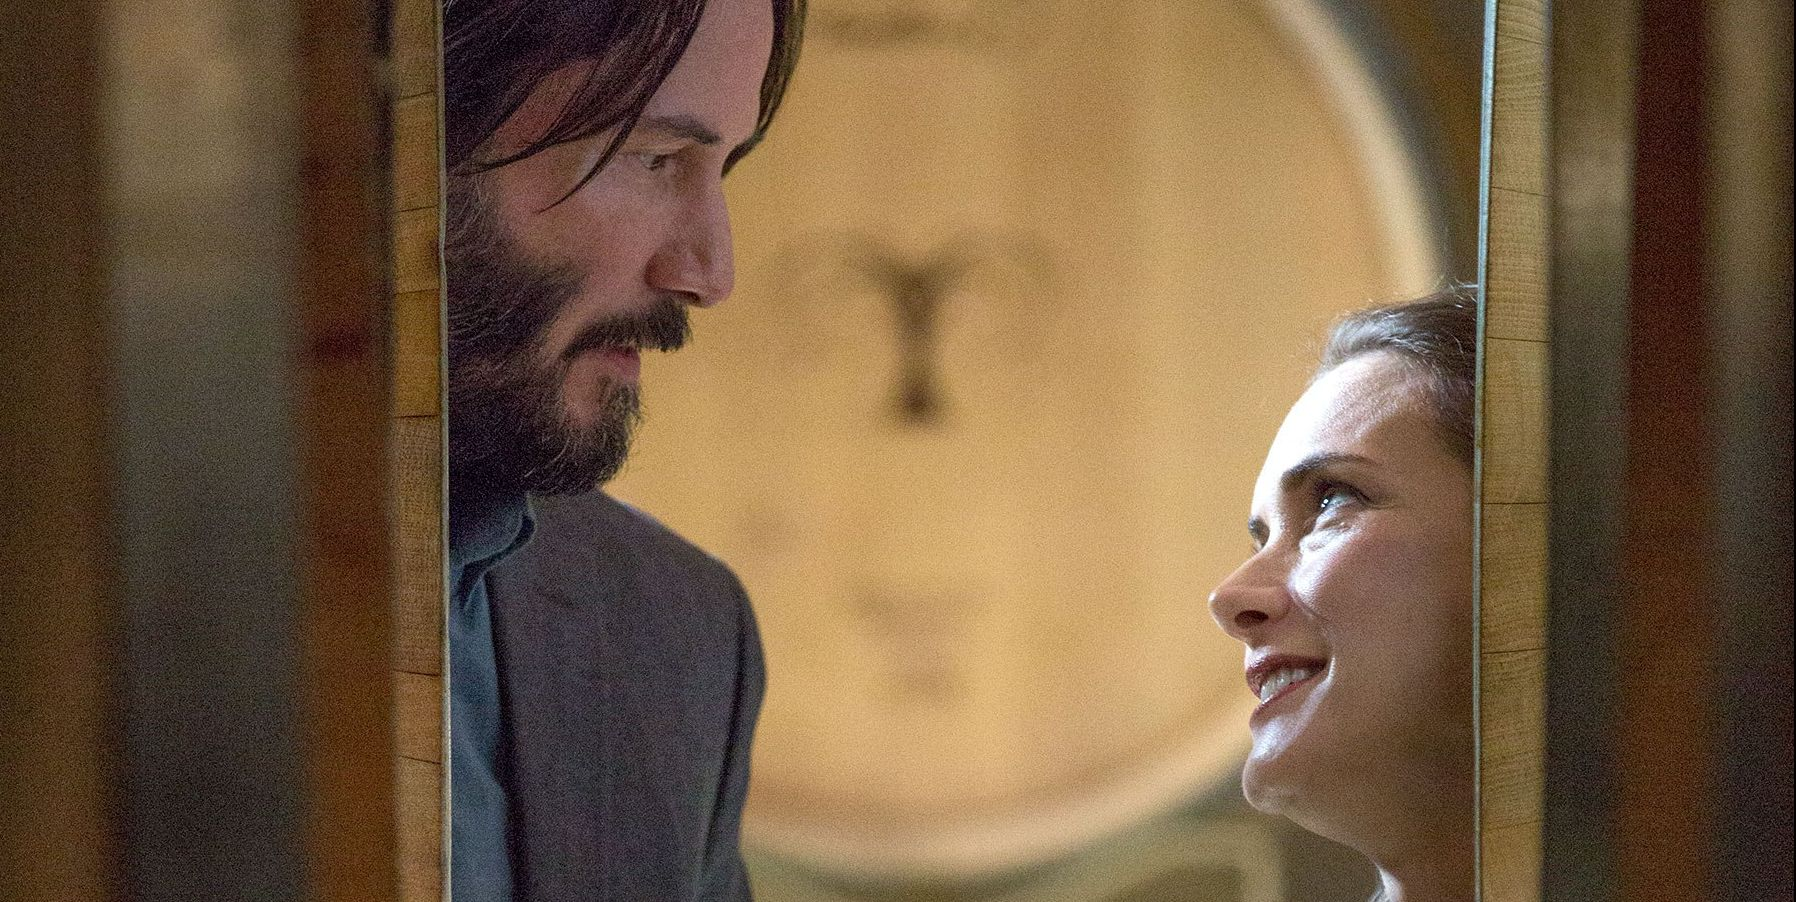 Keanu Reeves and Winona Ryder Are the Grumpiest in 'Destination Wedding' Trailer